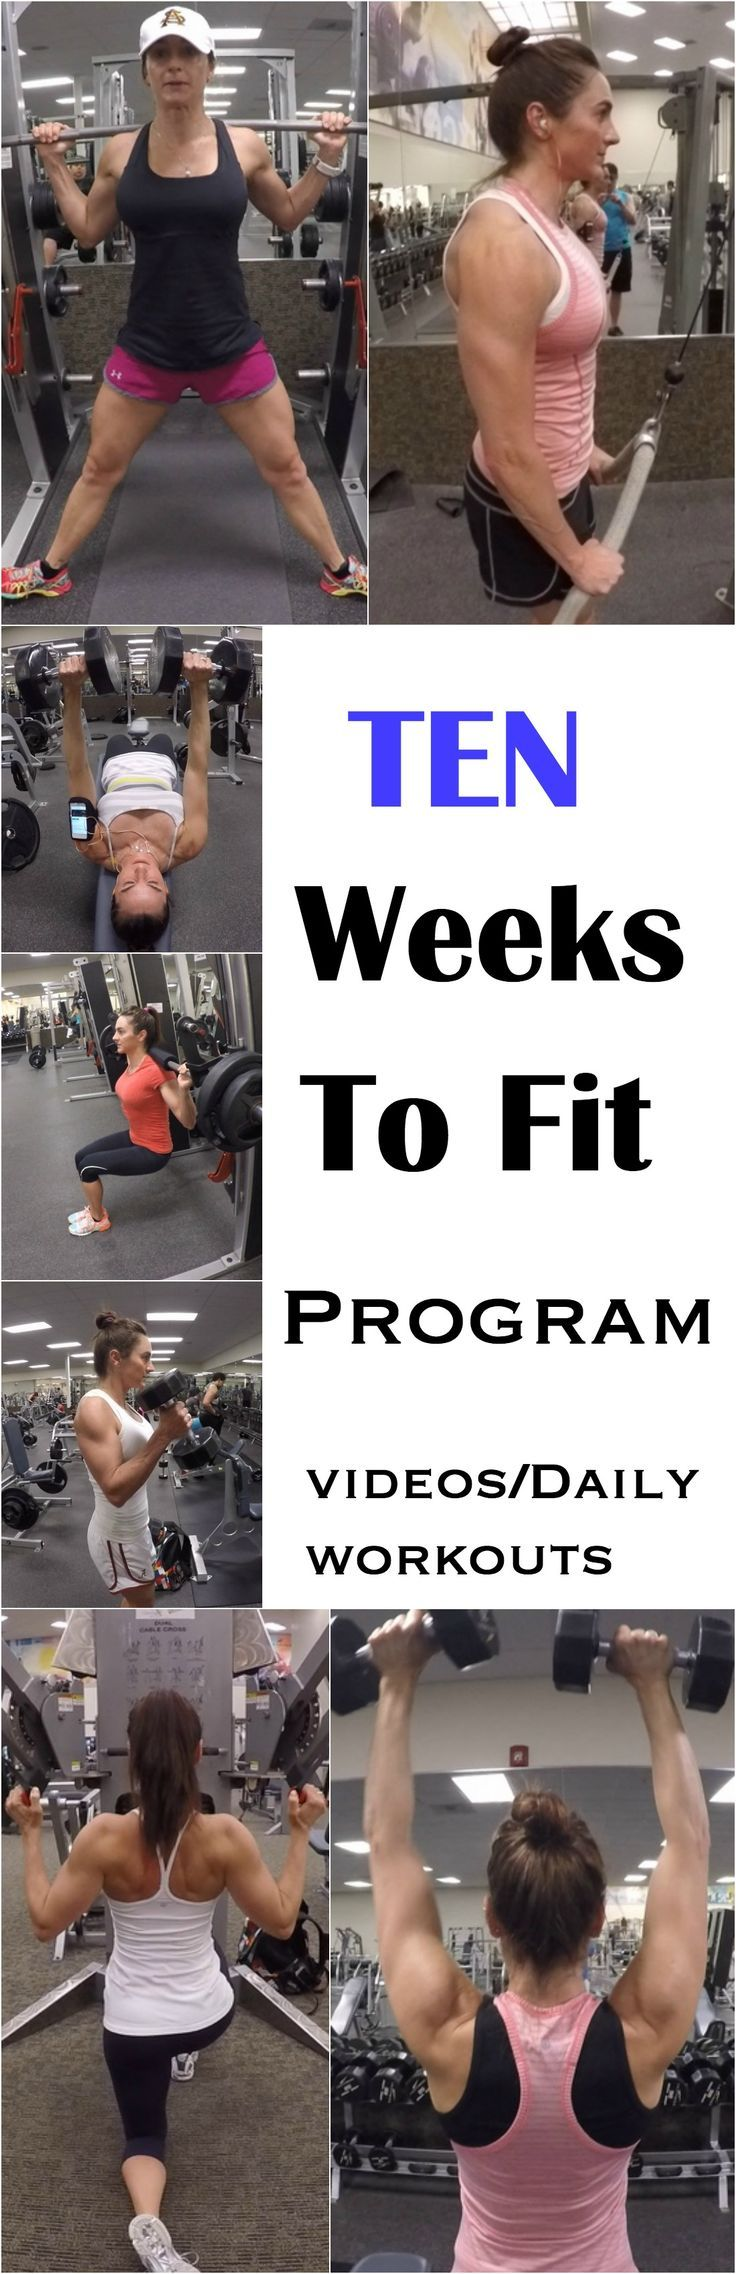 nice 10 WEEKS TO FIT PROGRAM WITH VIDEOS AND DAILY WORKOUTS!...